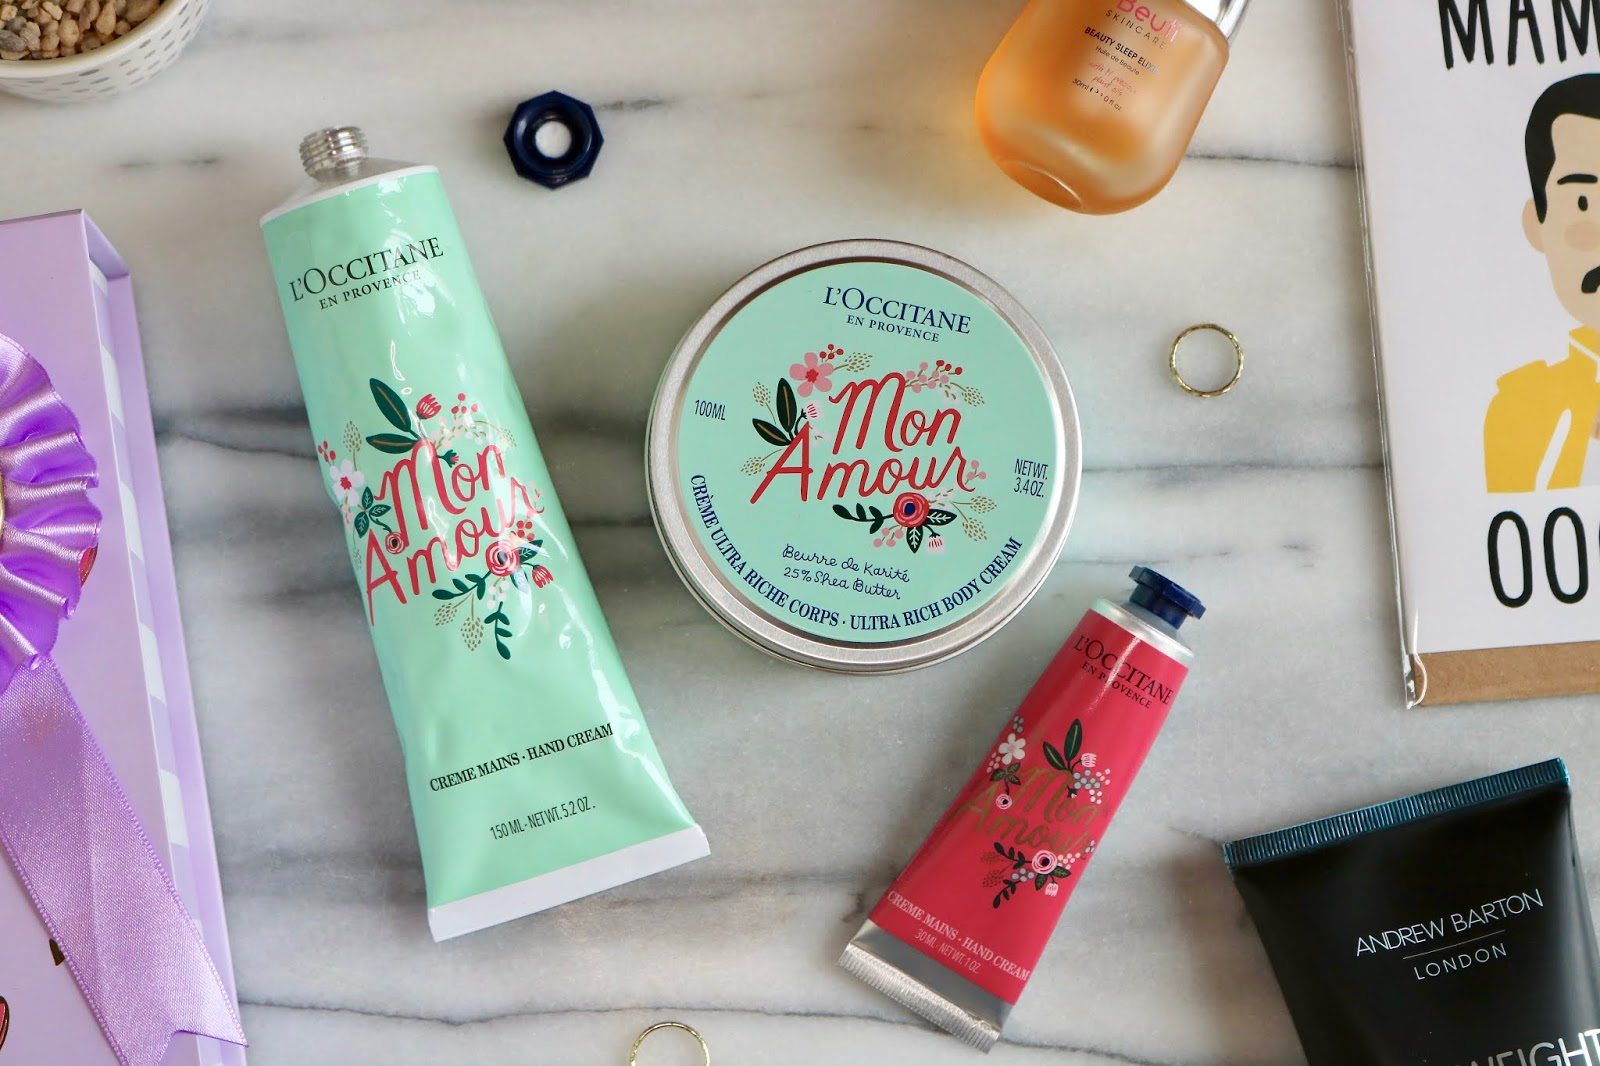 L'OCCITANE x RIFLE PAPER MON AMOUR HAND CREAMS